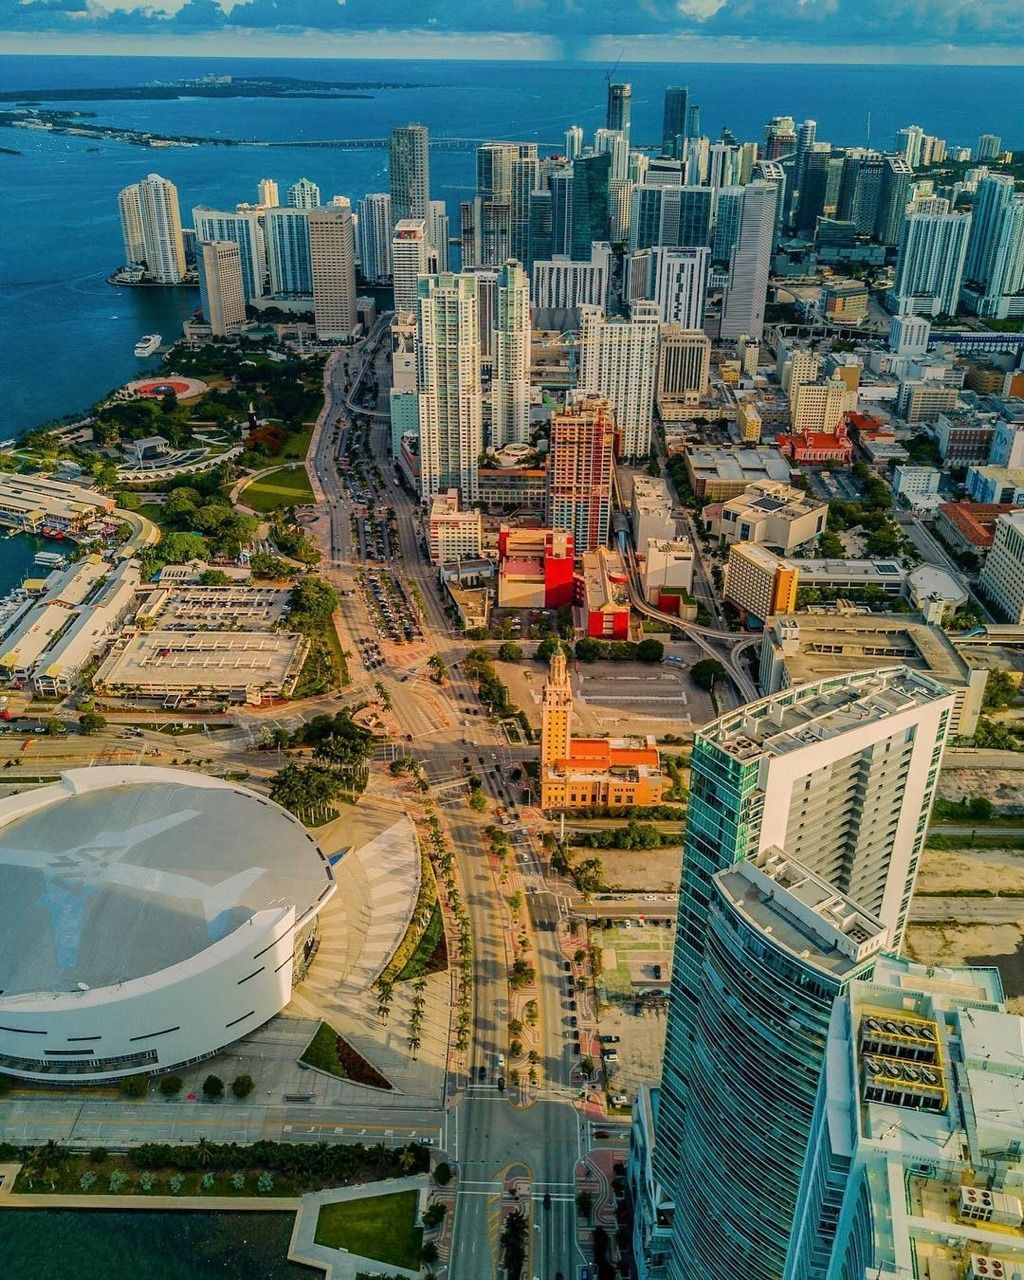 Downtown Miami By @acetheillest In 2020